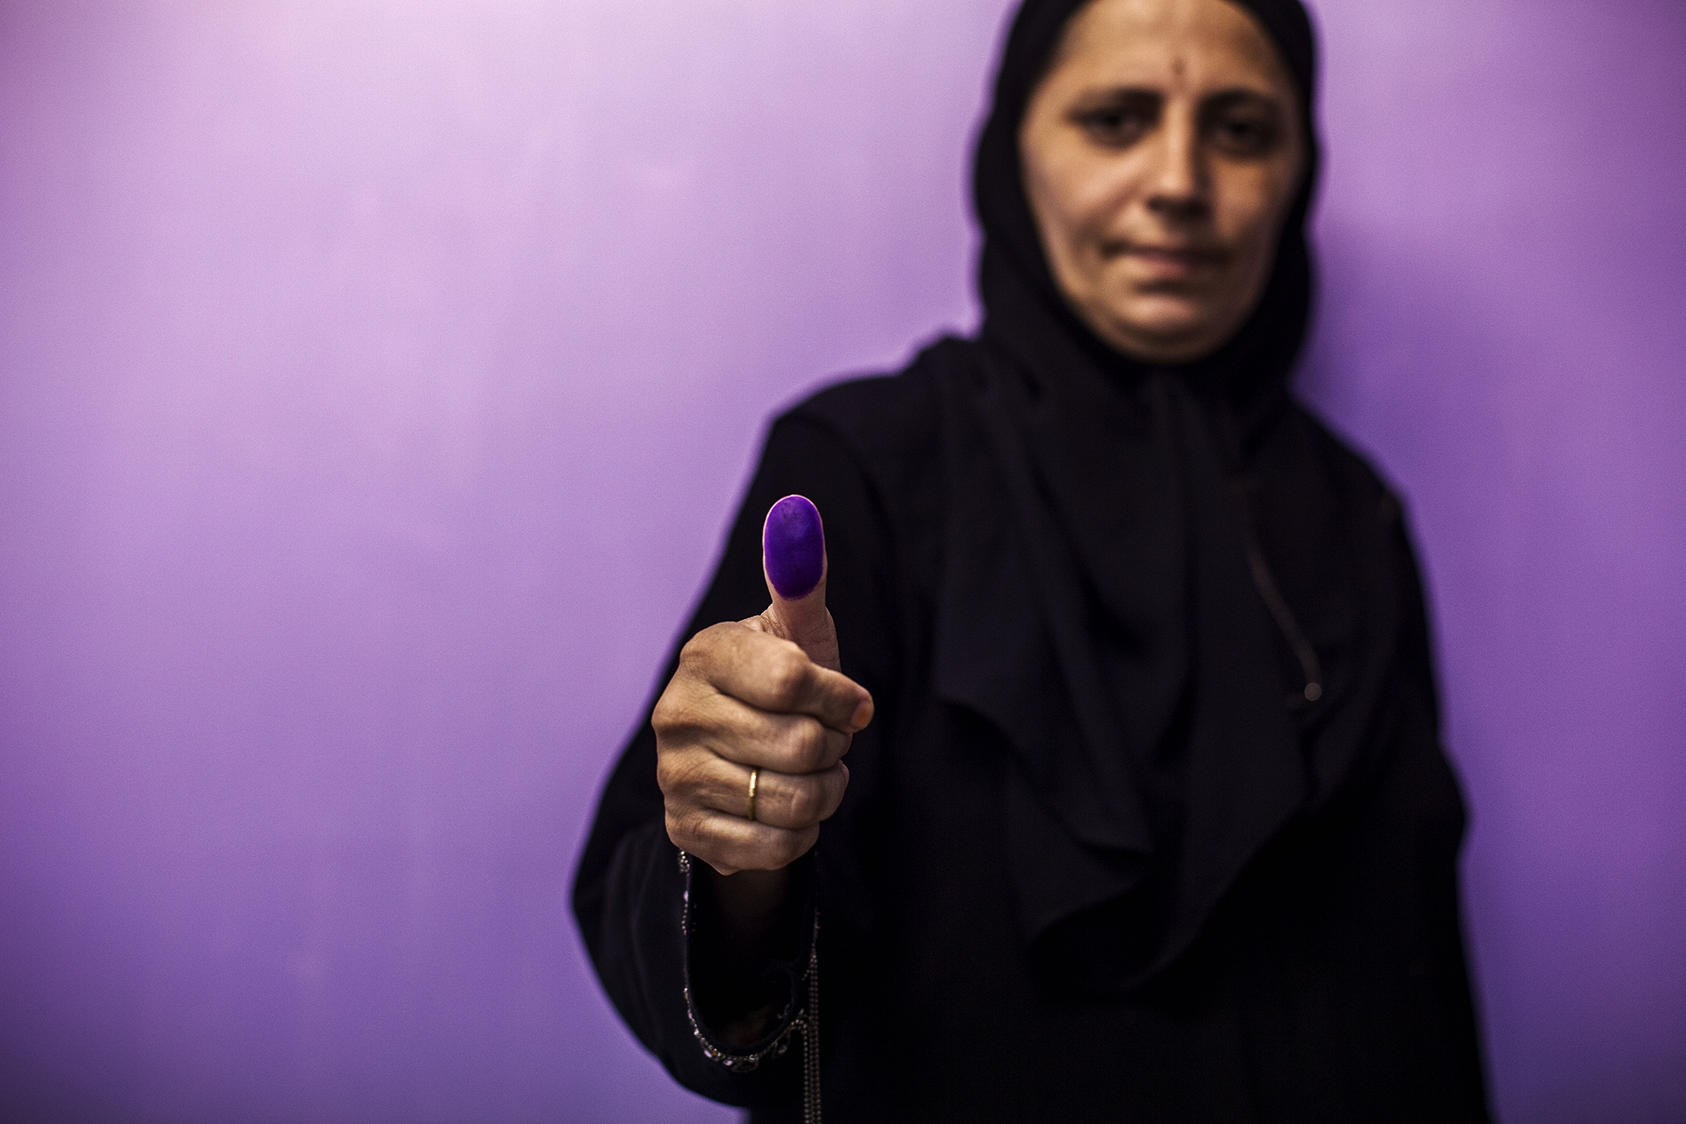 A woman shows her ink-covered thumb after casting her vote at a polling station during a repeat of the parliamentary election in Karachi, Pakistan, May 19, 2013. (Diego Ibarra Sanchez/The New York Times)